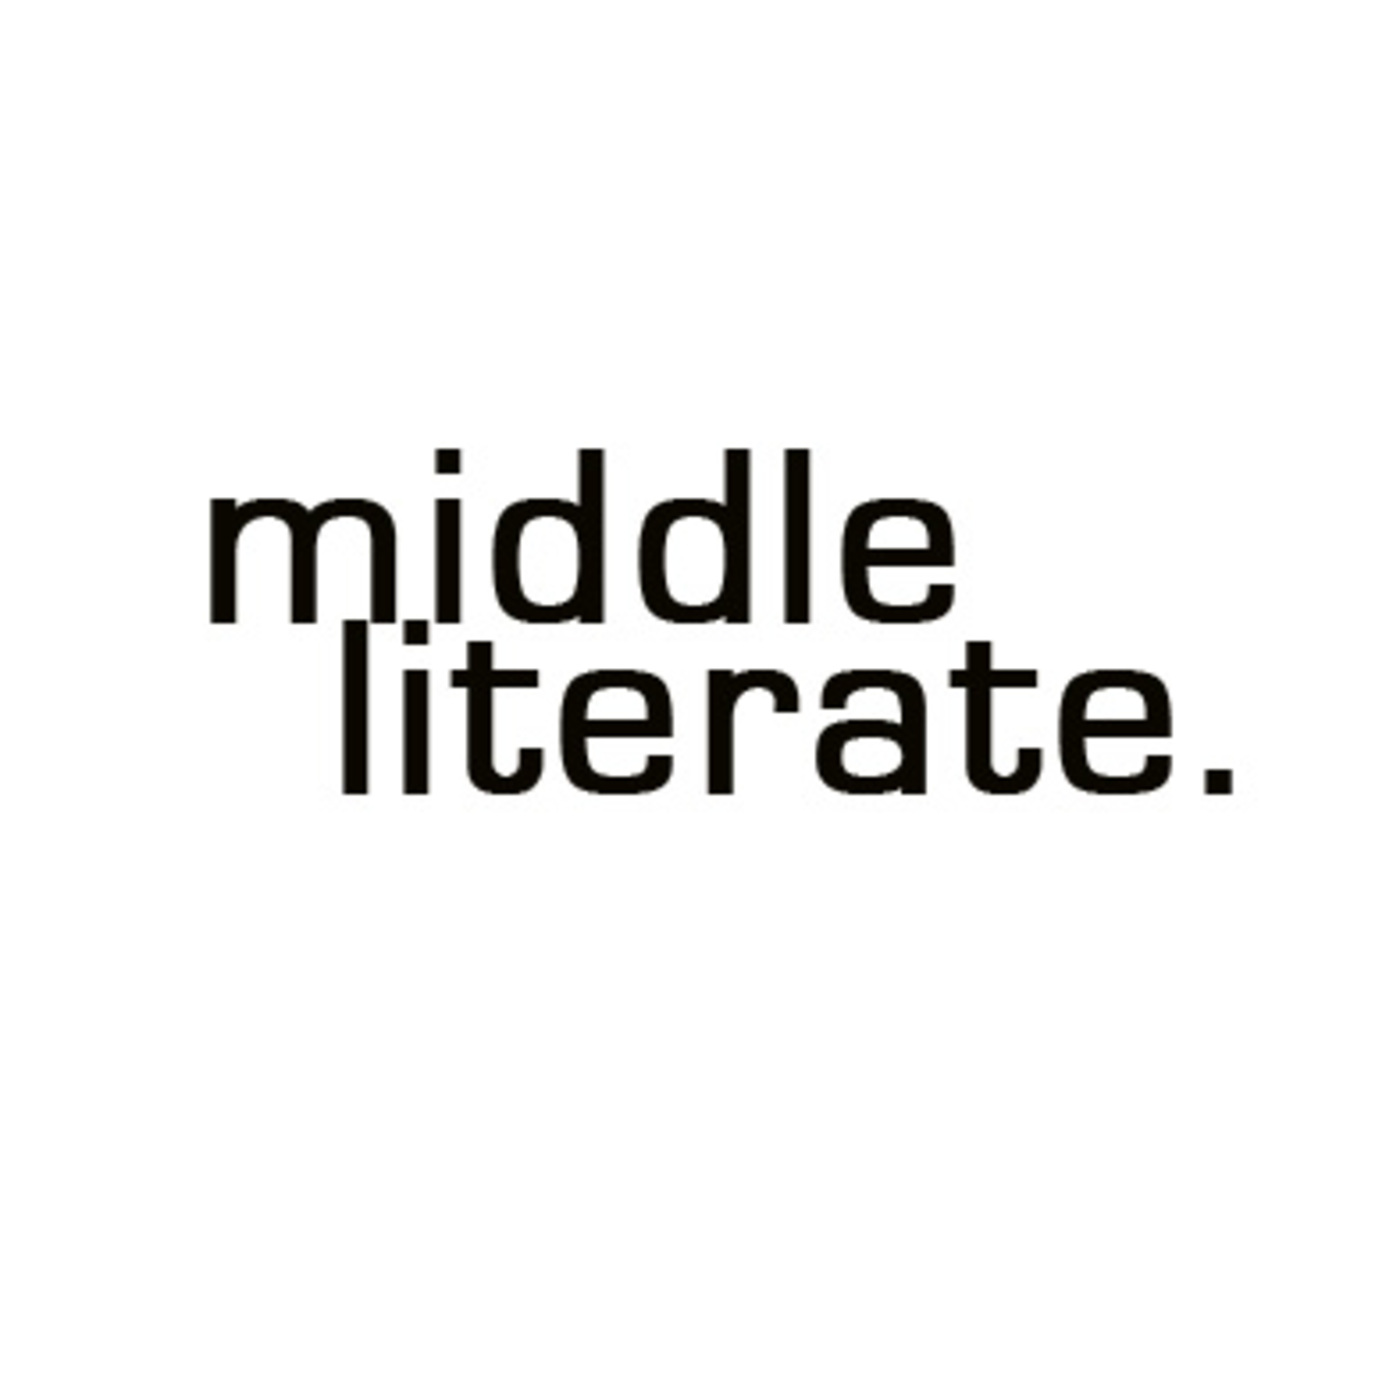 Middle Literate